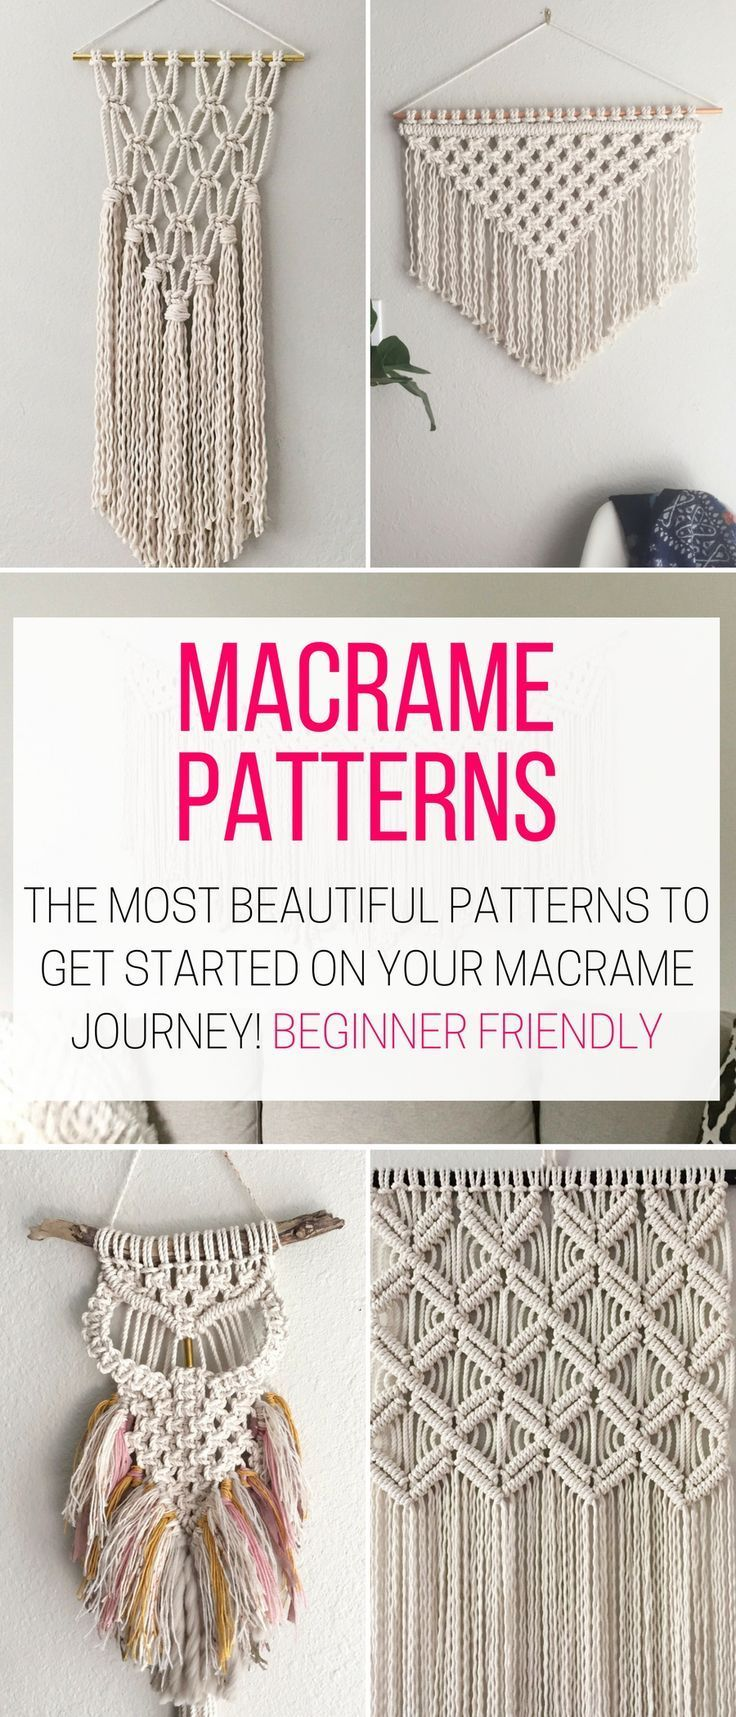 I found these DIY Macrame Wall Hanging